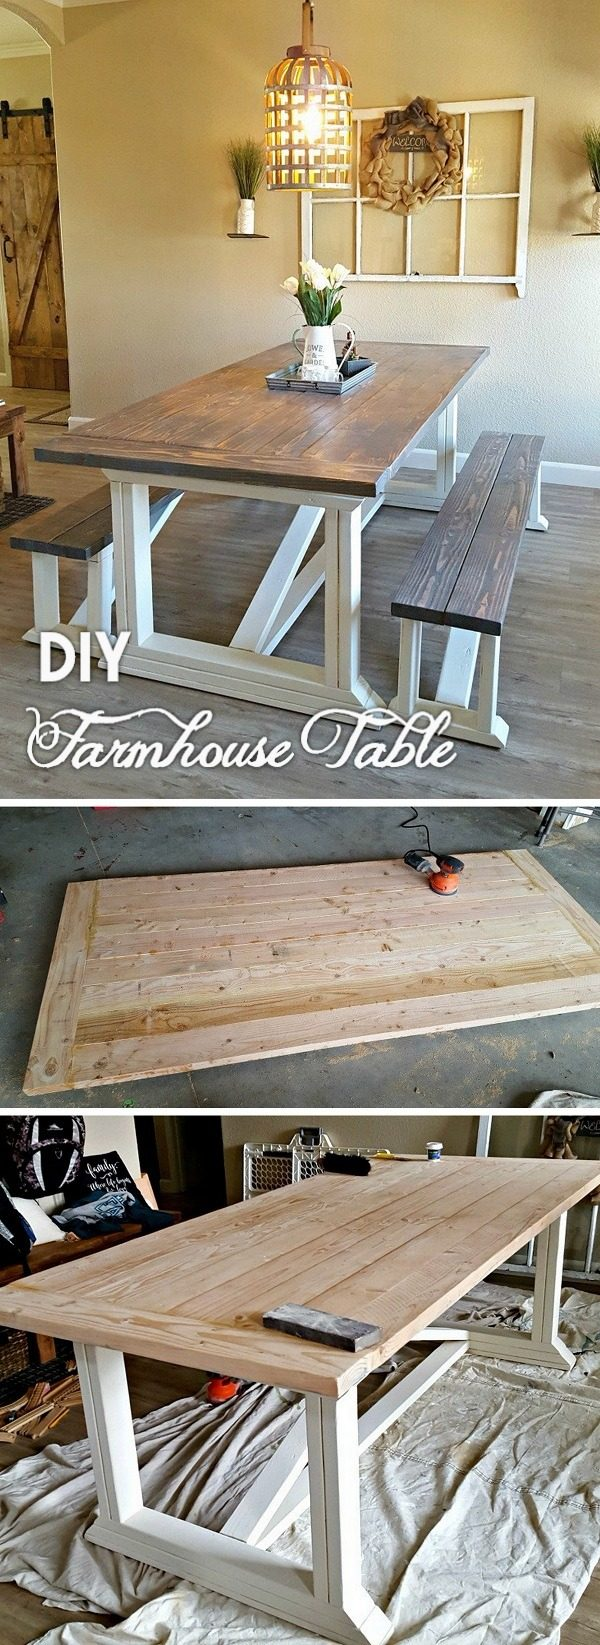 Check out the tutorial how to build a #DIY #farmhouse dining table #HomeDecorIdeas